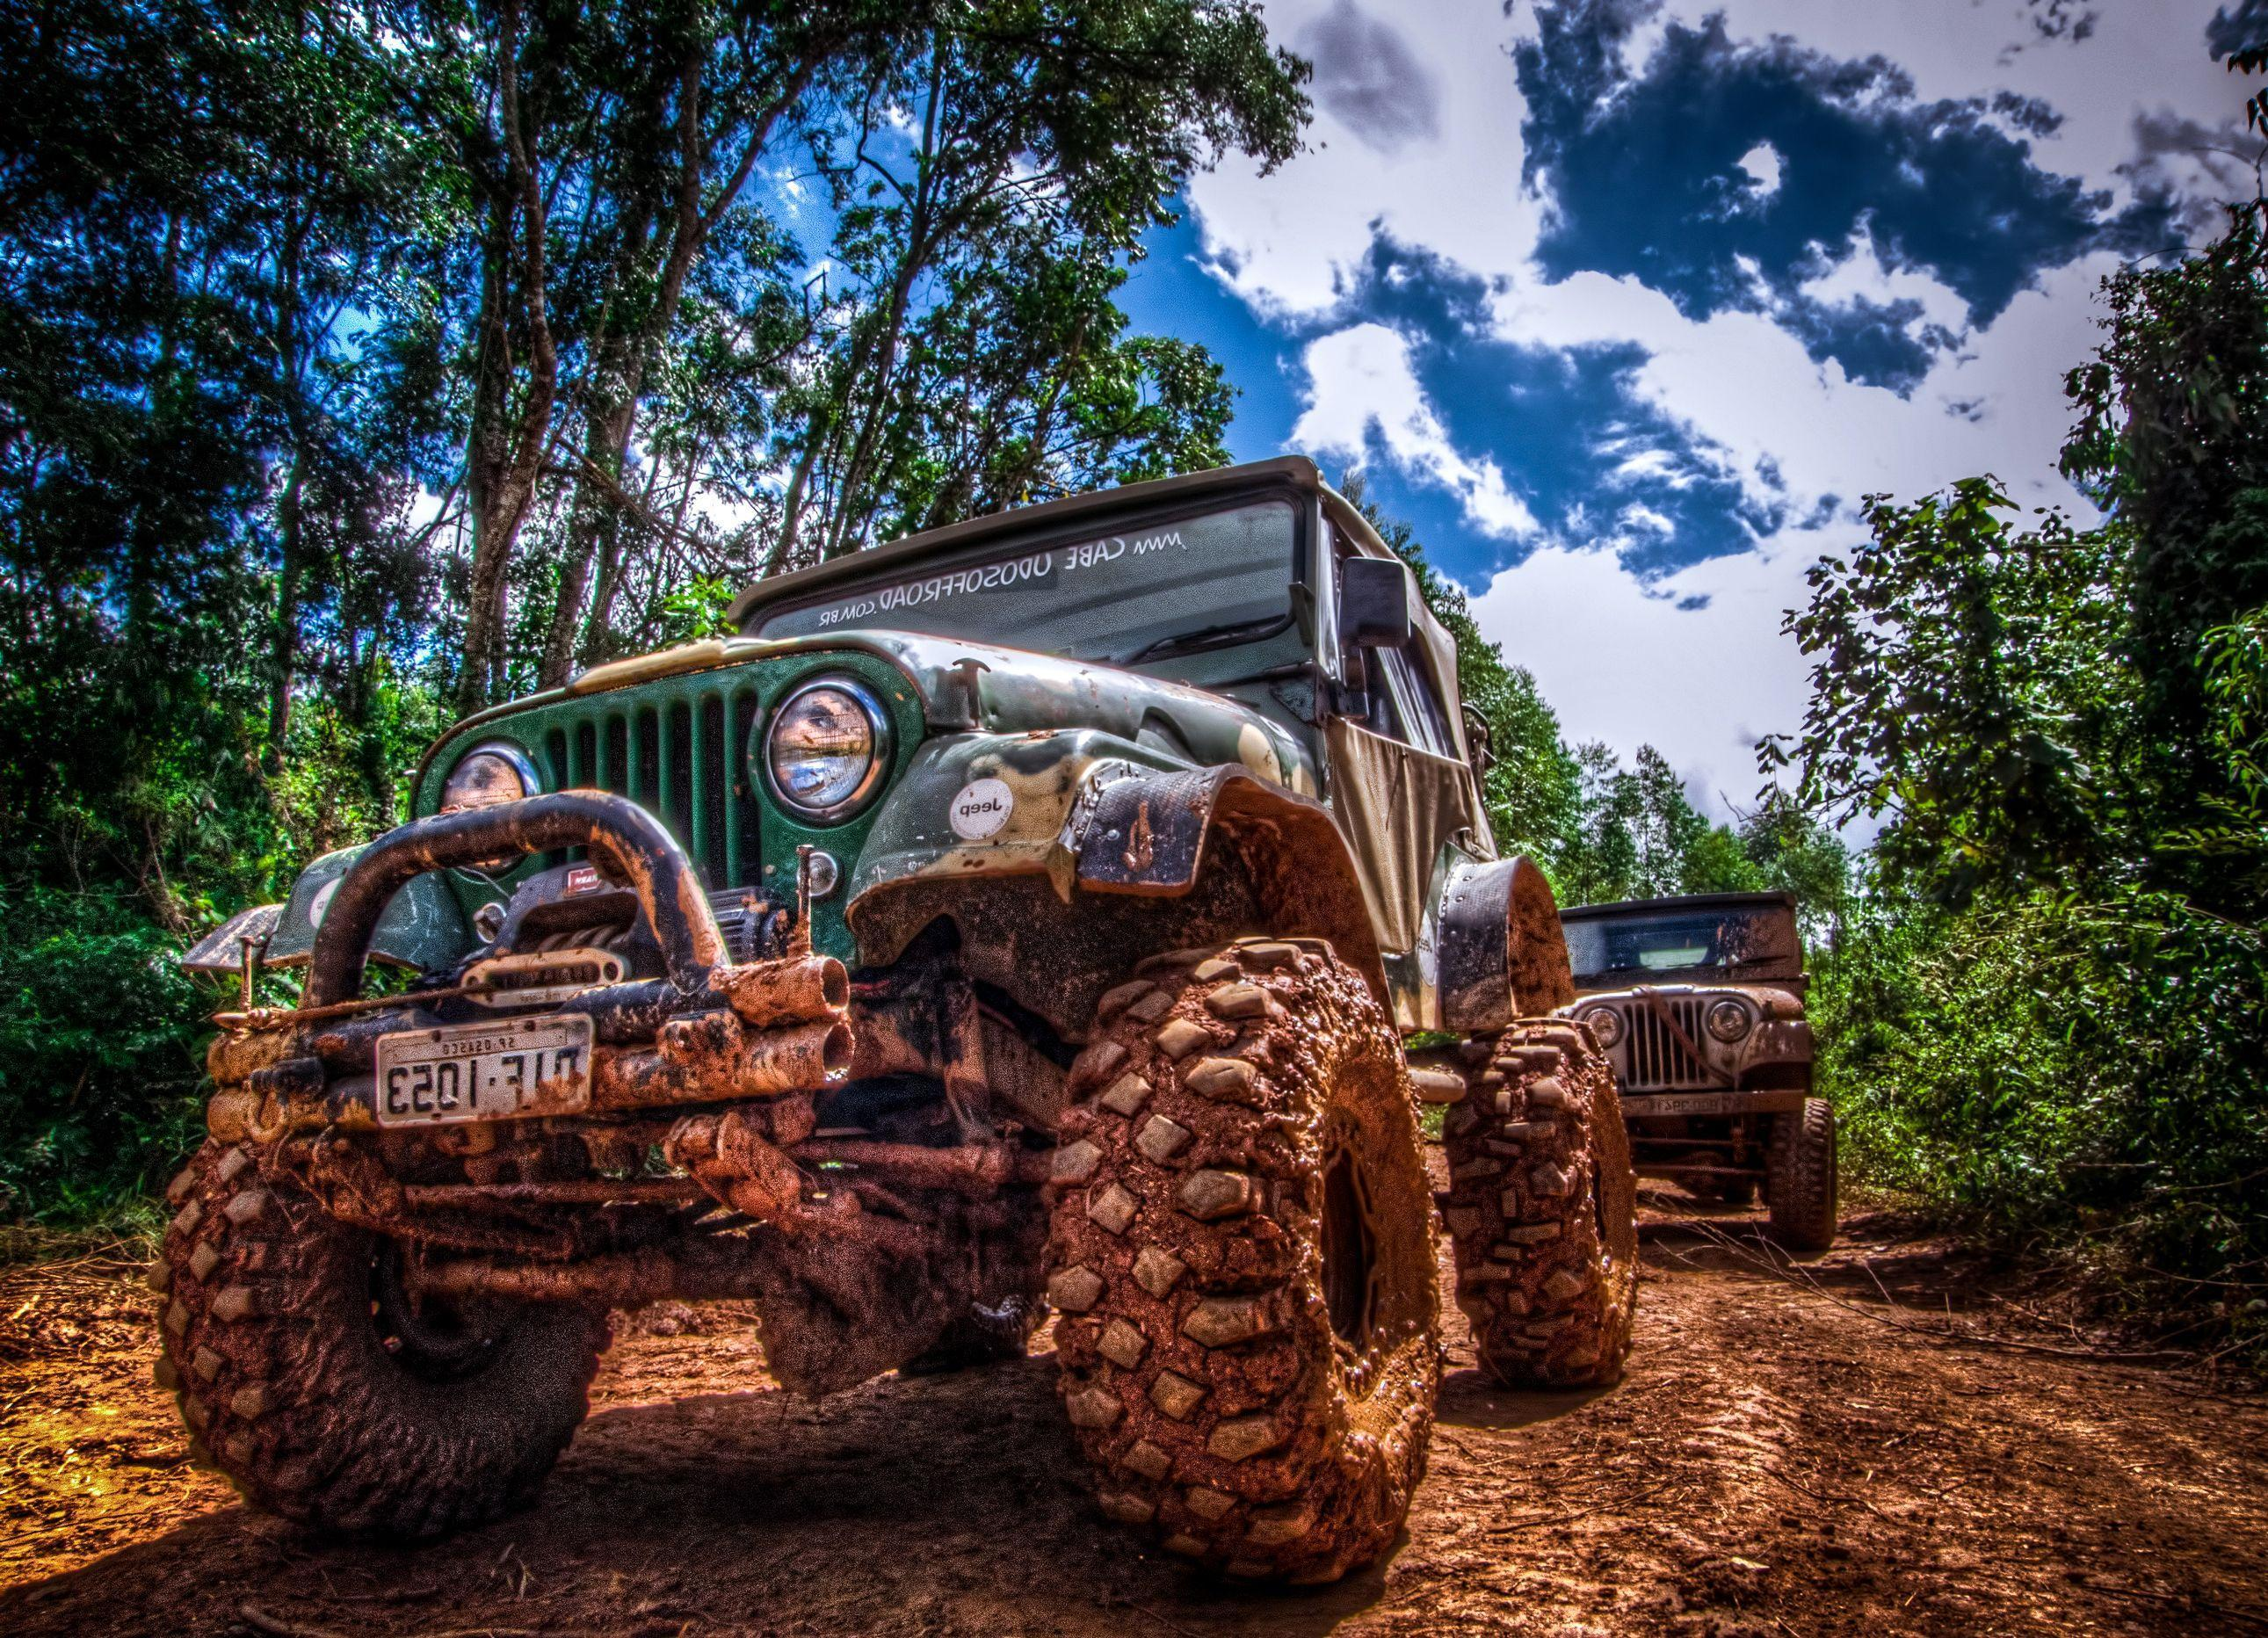 Mud Jeep Wallpapers For Desktop